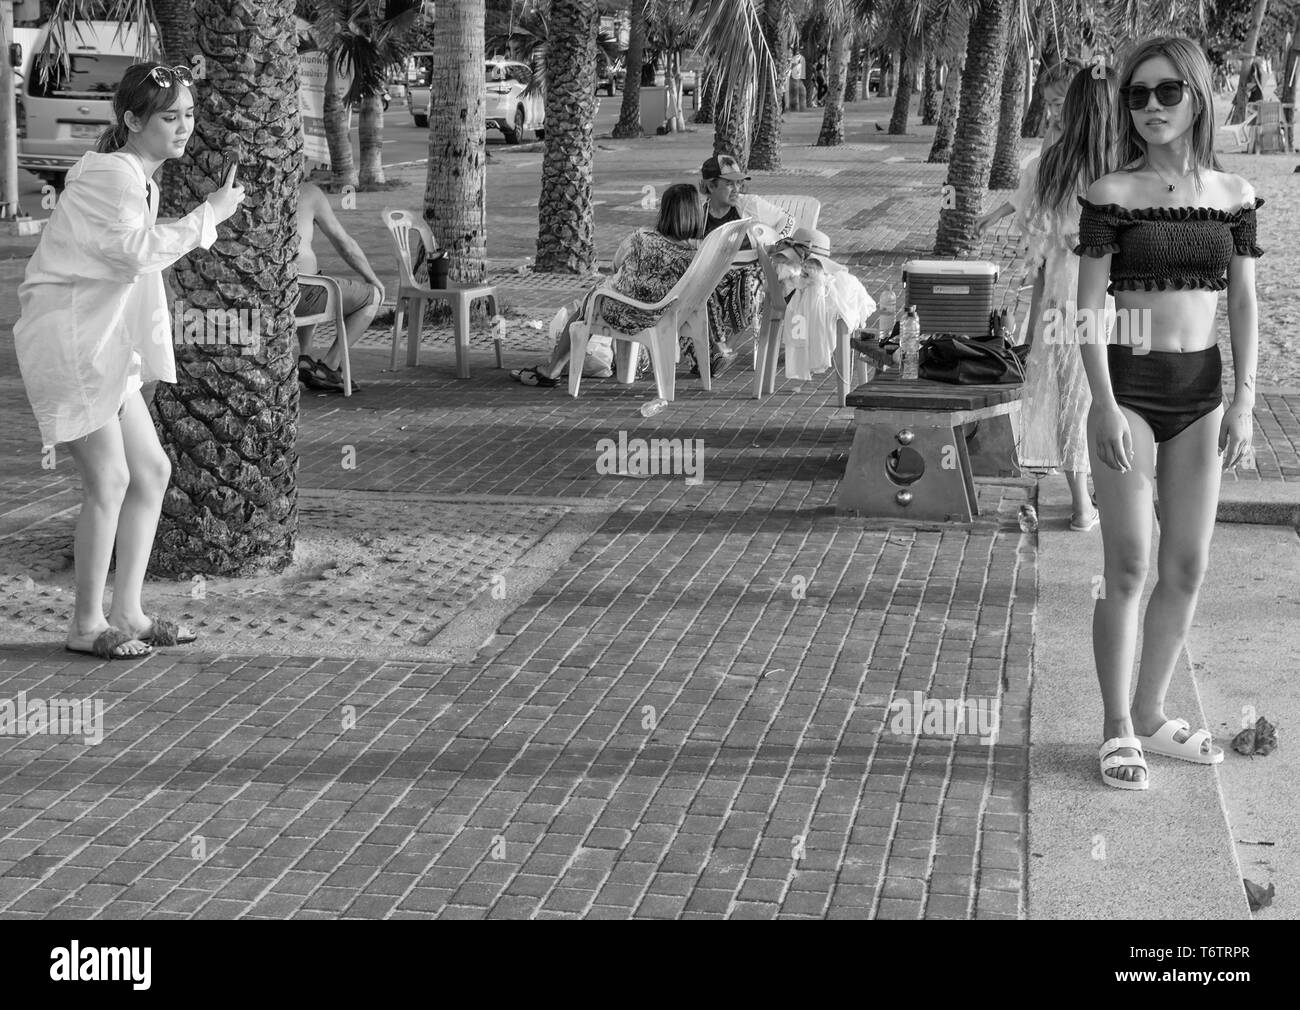 PATTAYA,THAILAND - APRIL 10,2019:The beach Four,young female Chinese tourists did a bikini shooting on the beach. - Stock Image